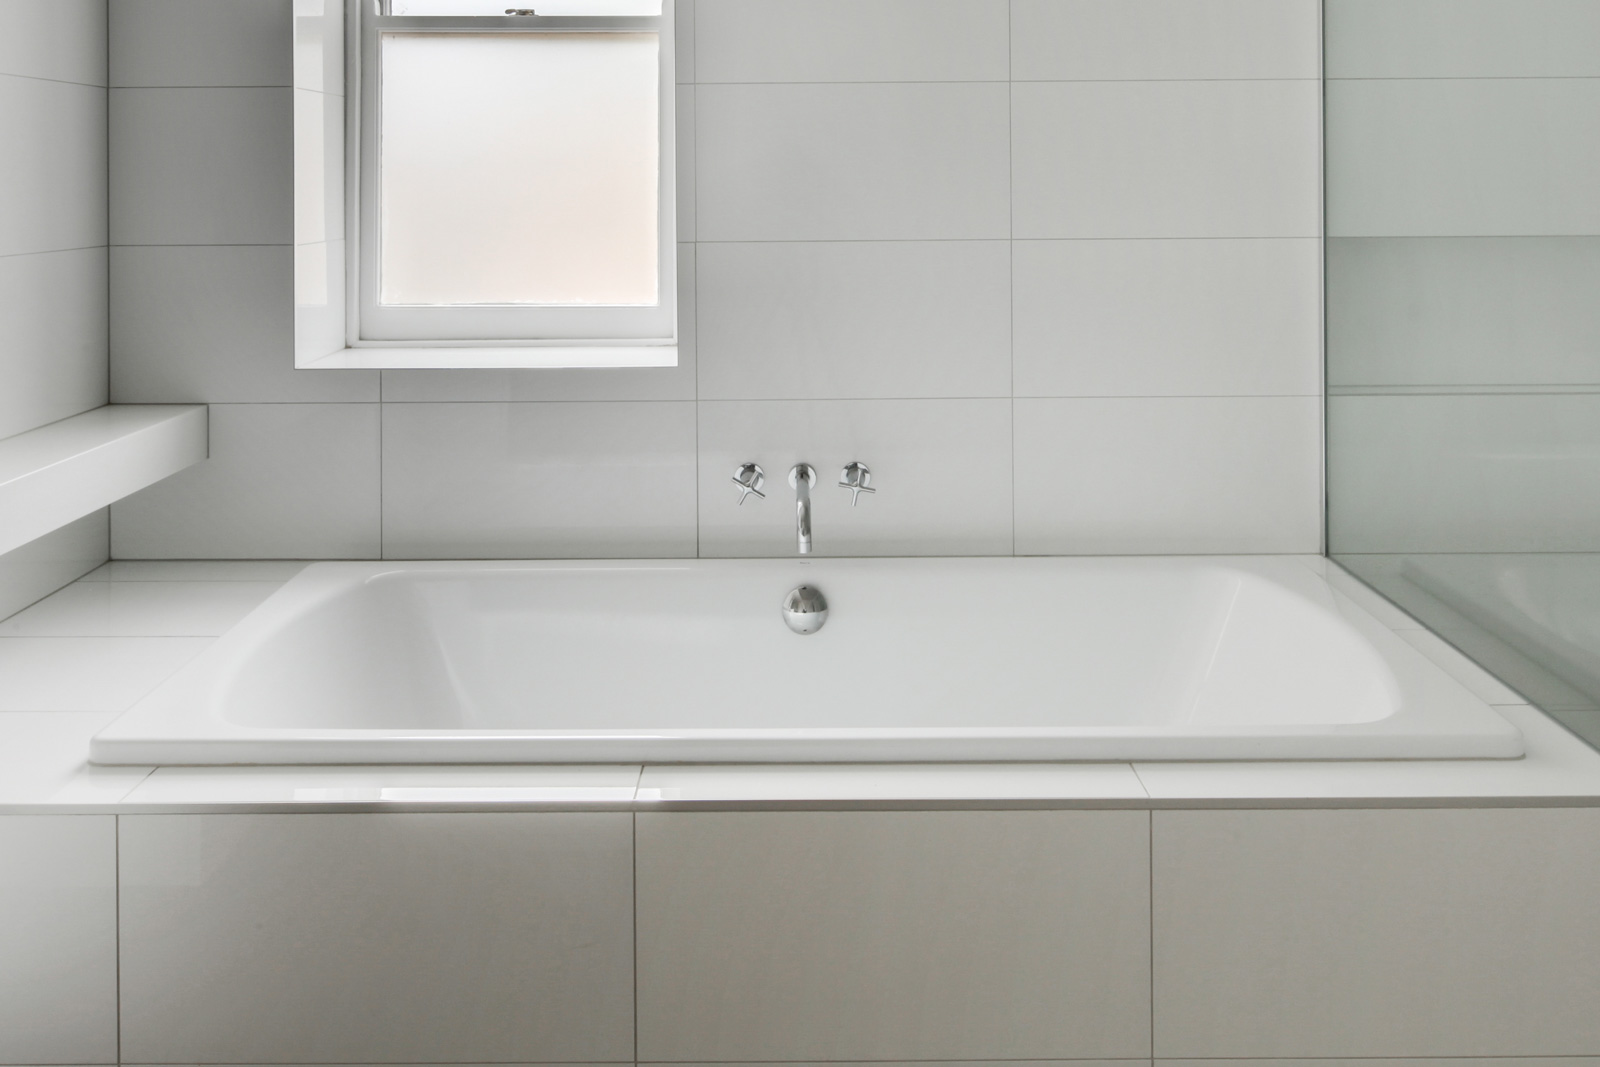 Superieur A Stark, White Tile Bathroom With A Tub And Window